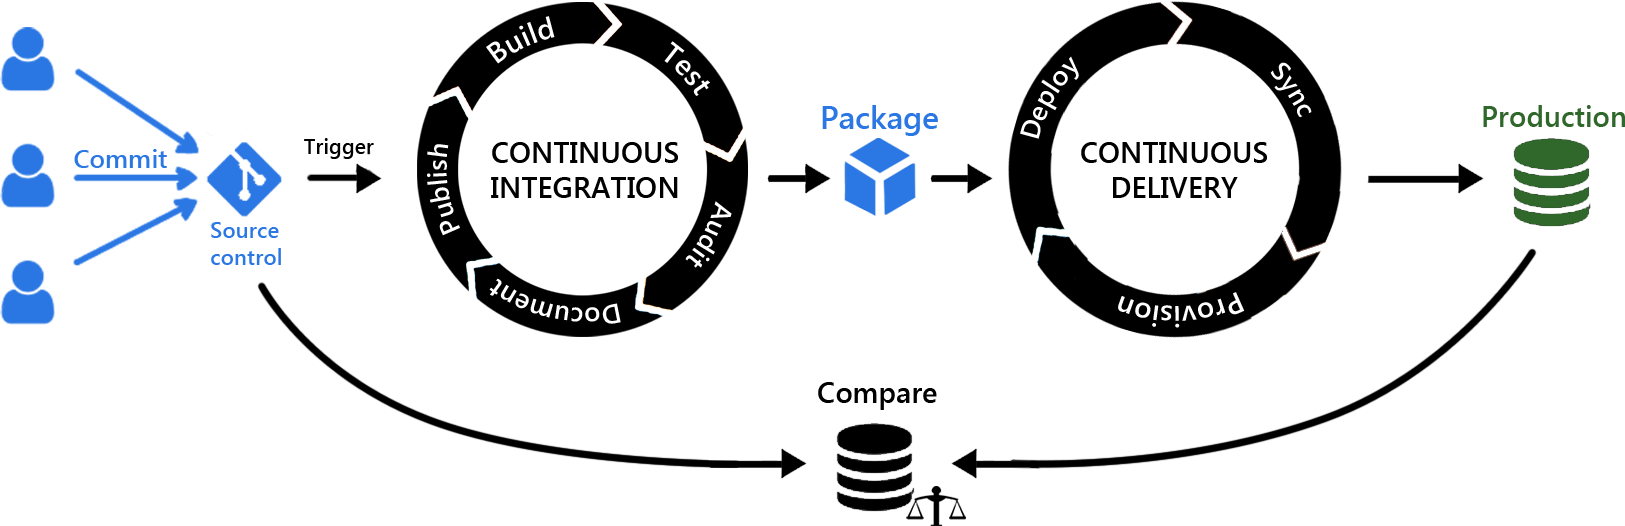 Continuous database integration and delivery